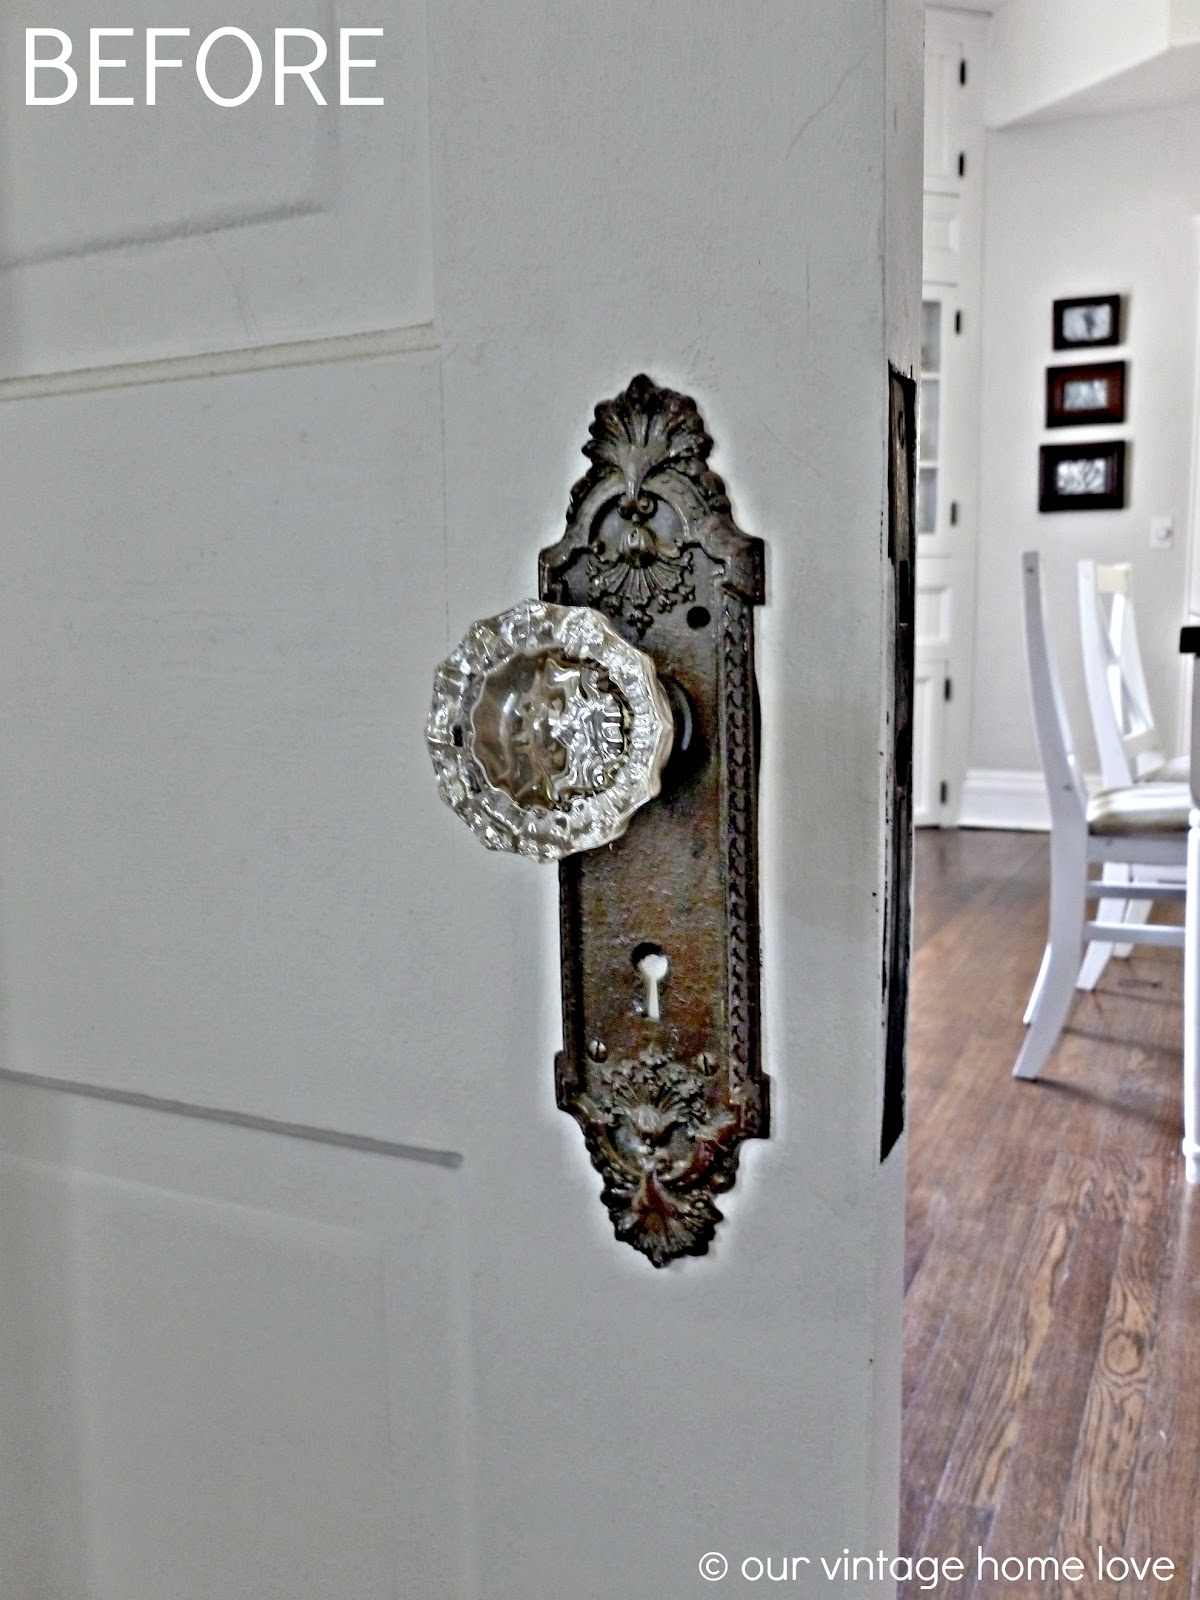 artistry knobs function doors details glass pdf the elegance architectural knob vintage p past of features old door form